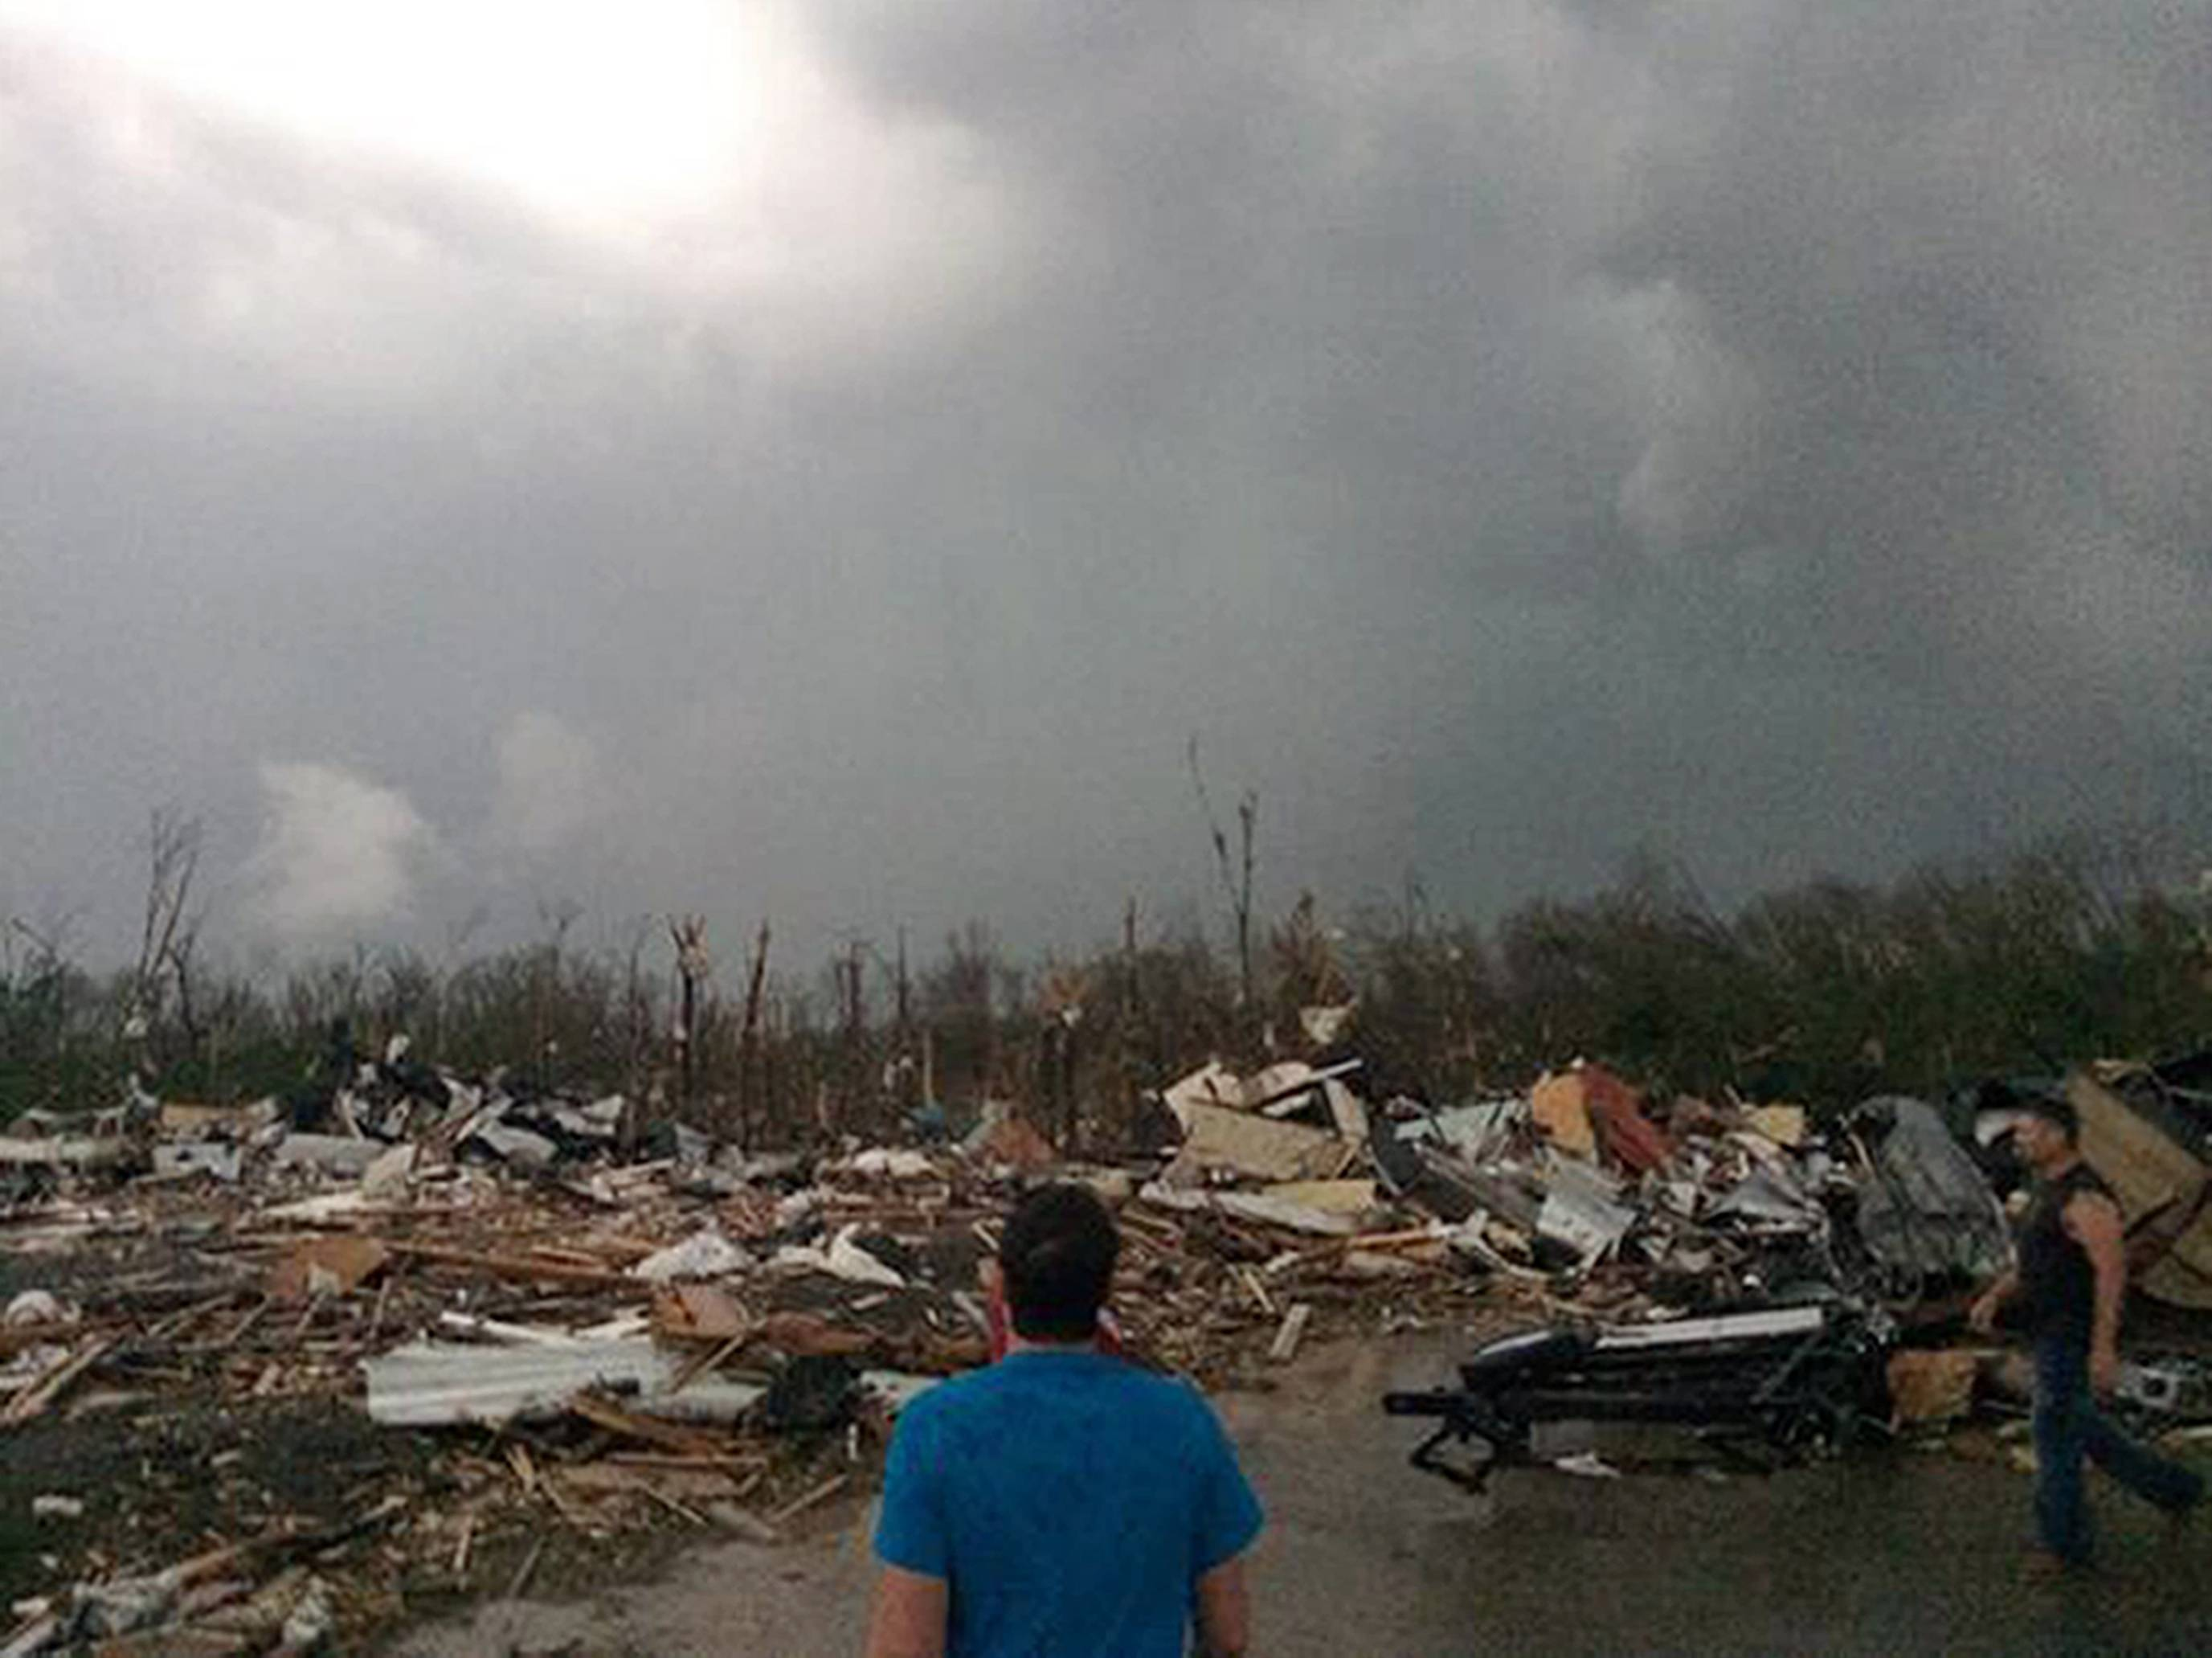 Tornadoes strike central, southern U.S., killing 2